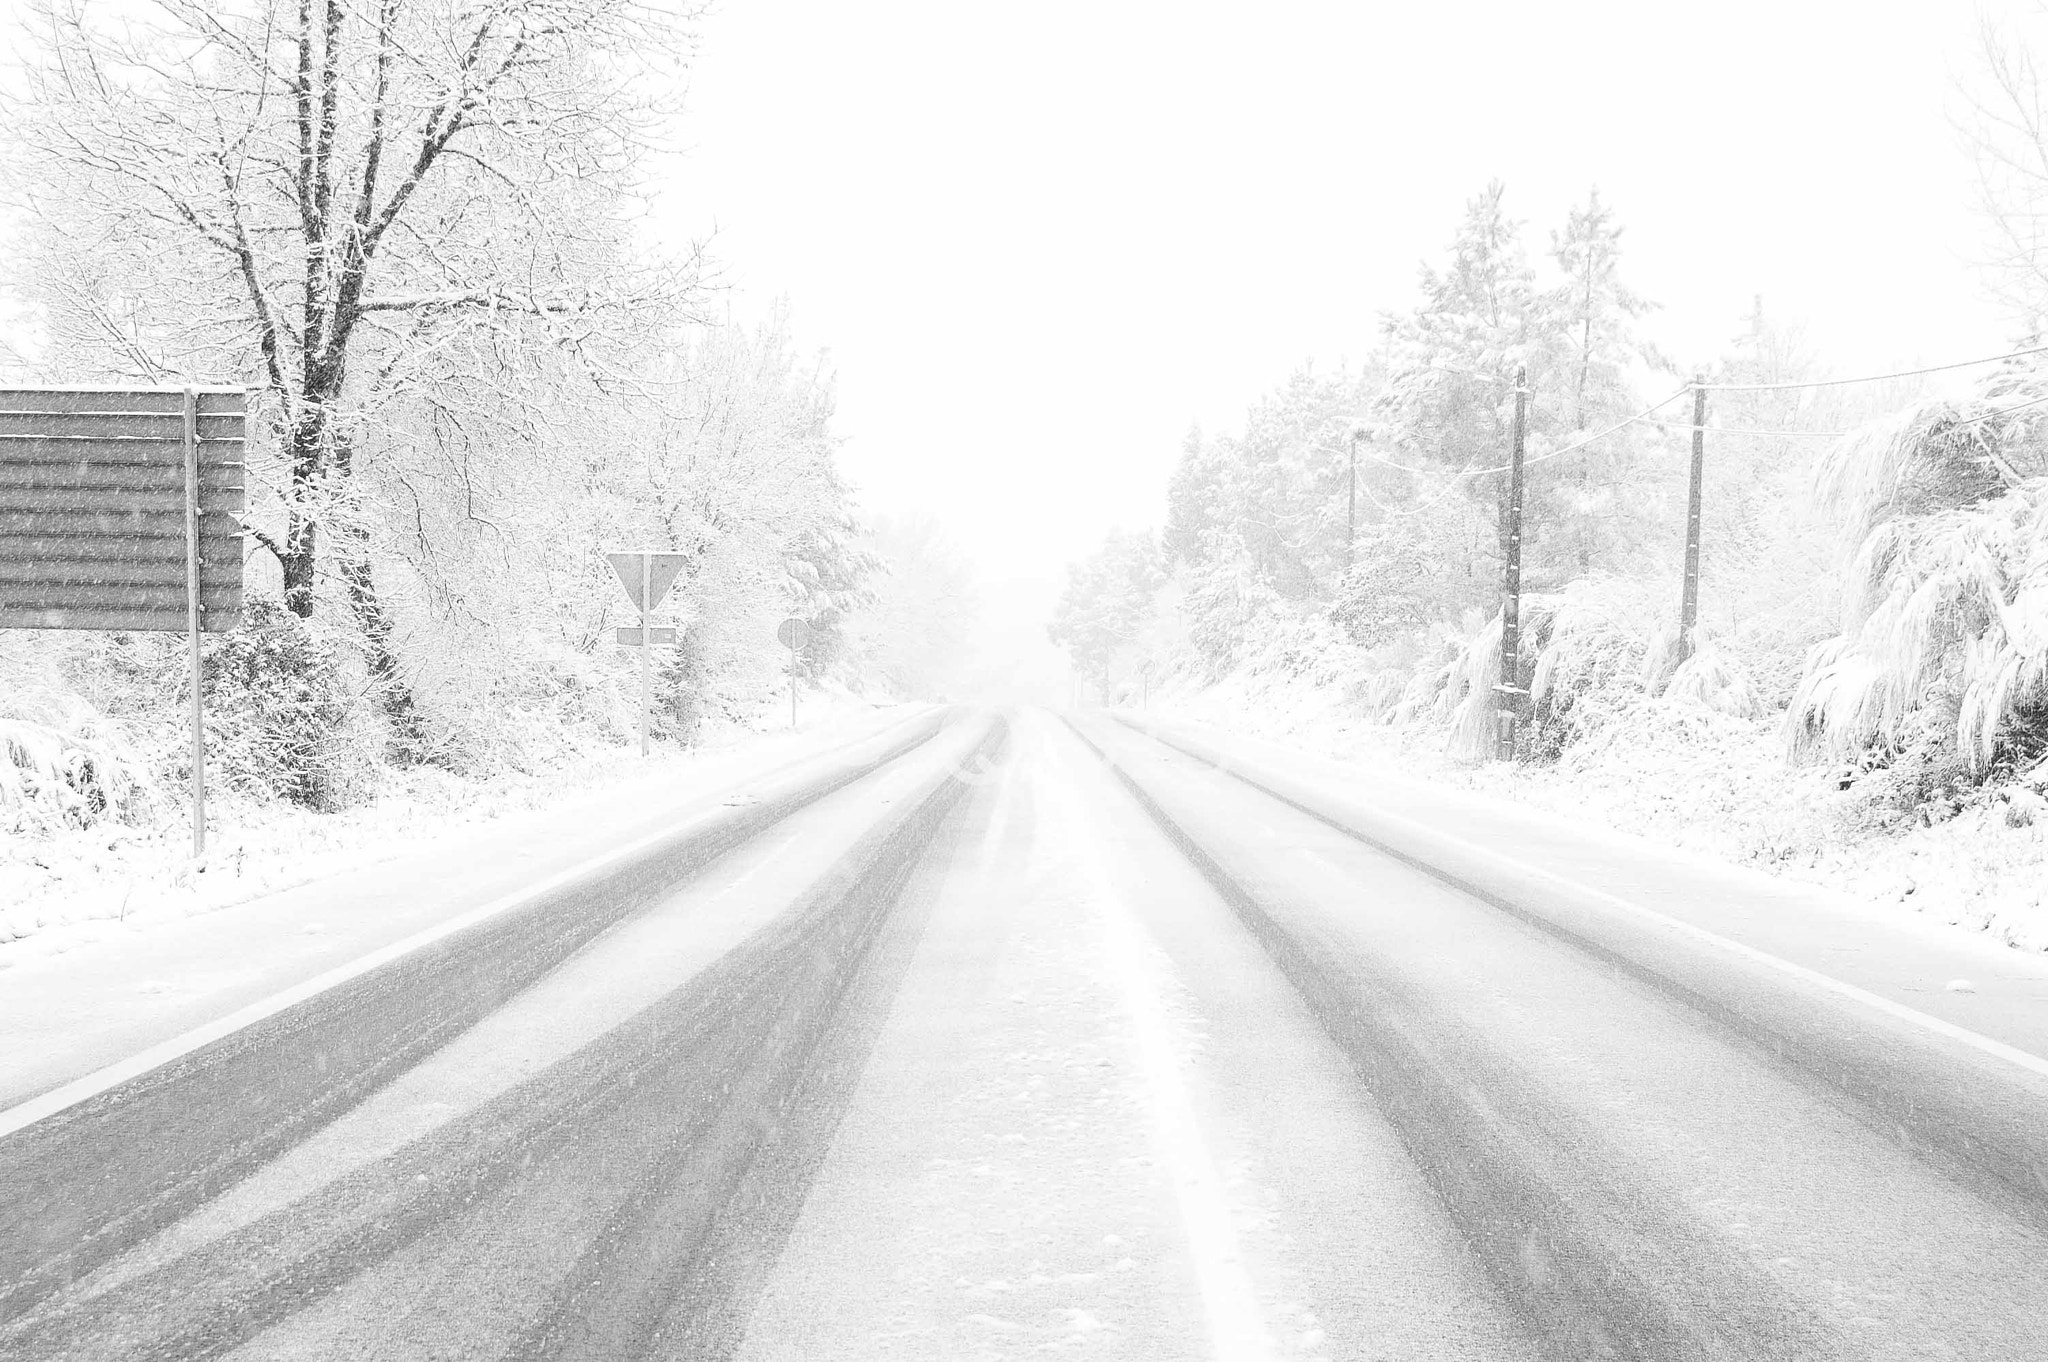 Photograph SNOW ON THE ROAD by Kike Martínez  on 500px